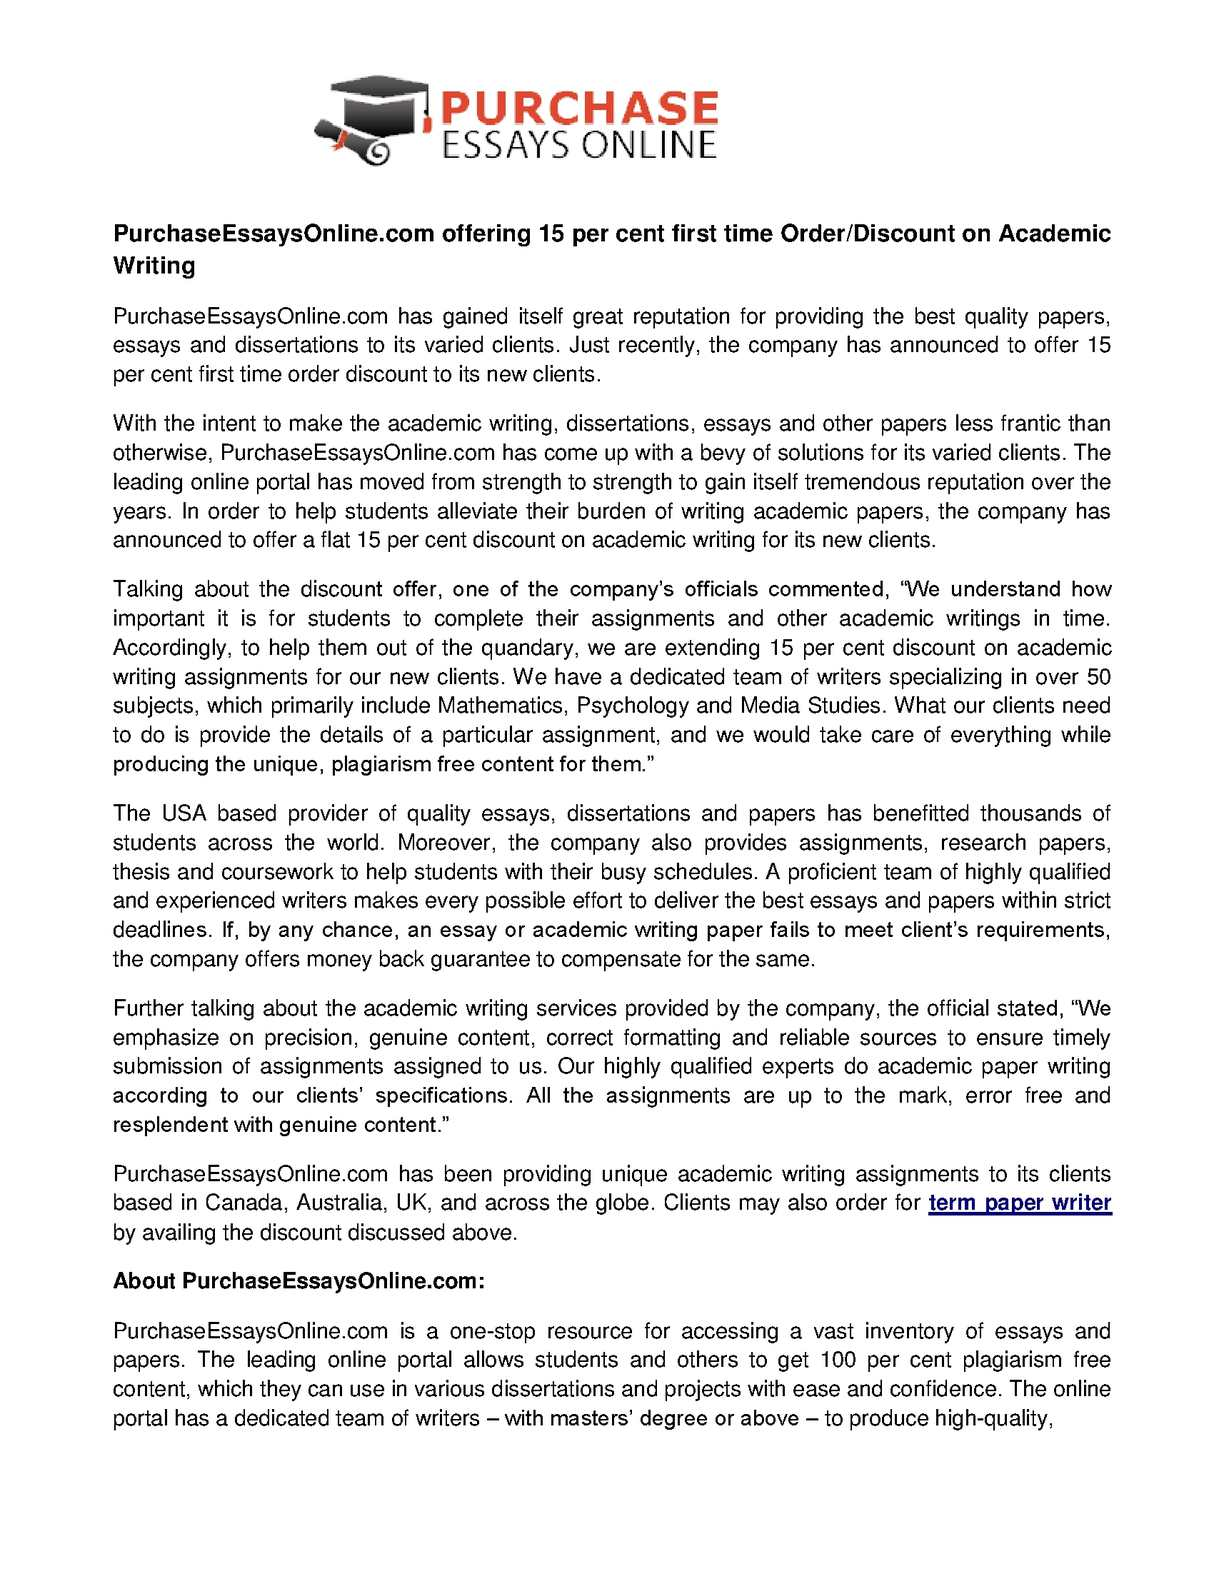 How To Write A High School Essay Calamo  Purchaseessaysonlinecom Offering  Per Cent First Time Order  Discount On Academic Writing Health And Fitness Essays also Essay Writing Thesis Statement Calamo  Purchaseessaysonlinecom Offering  Per Cent First Time  Science Development Essay